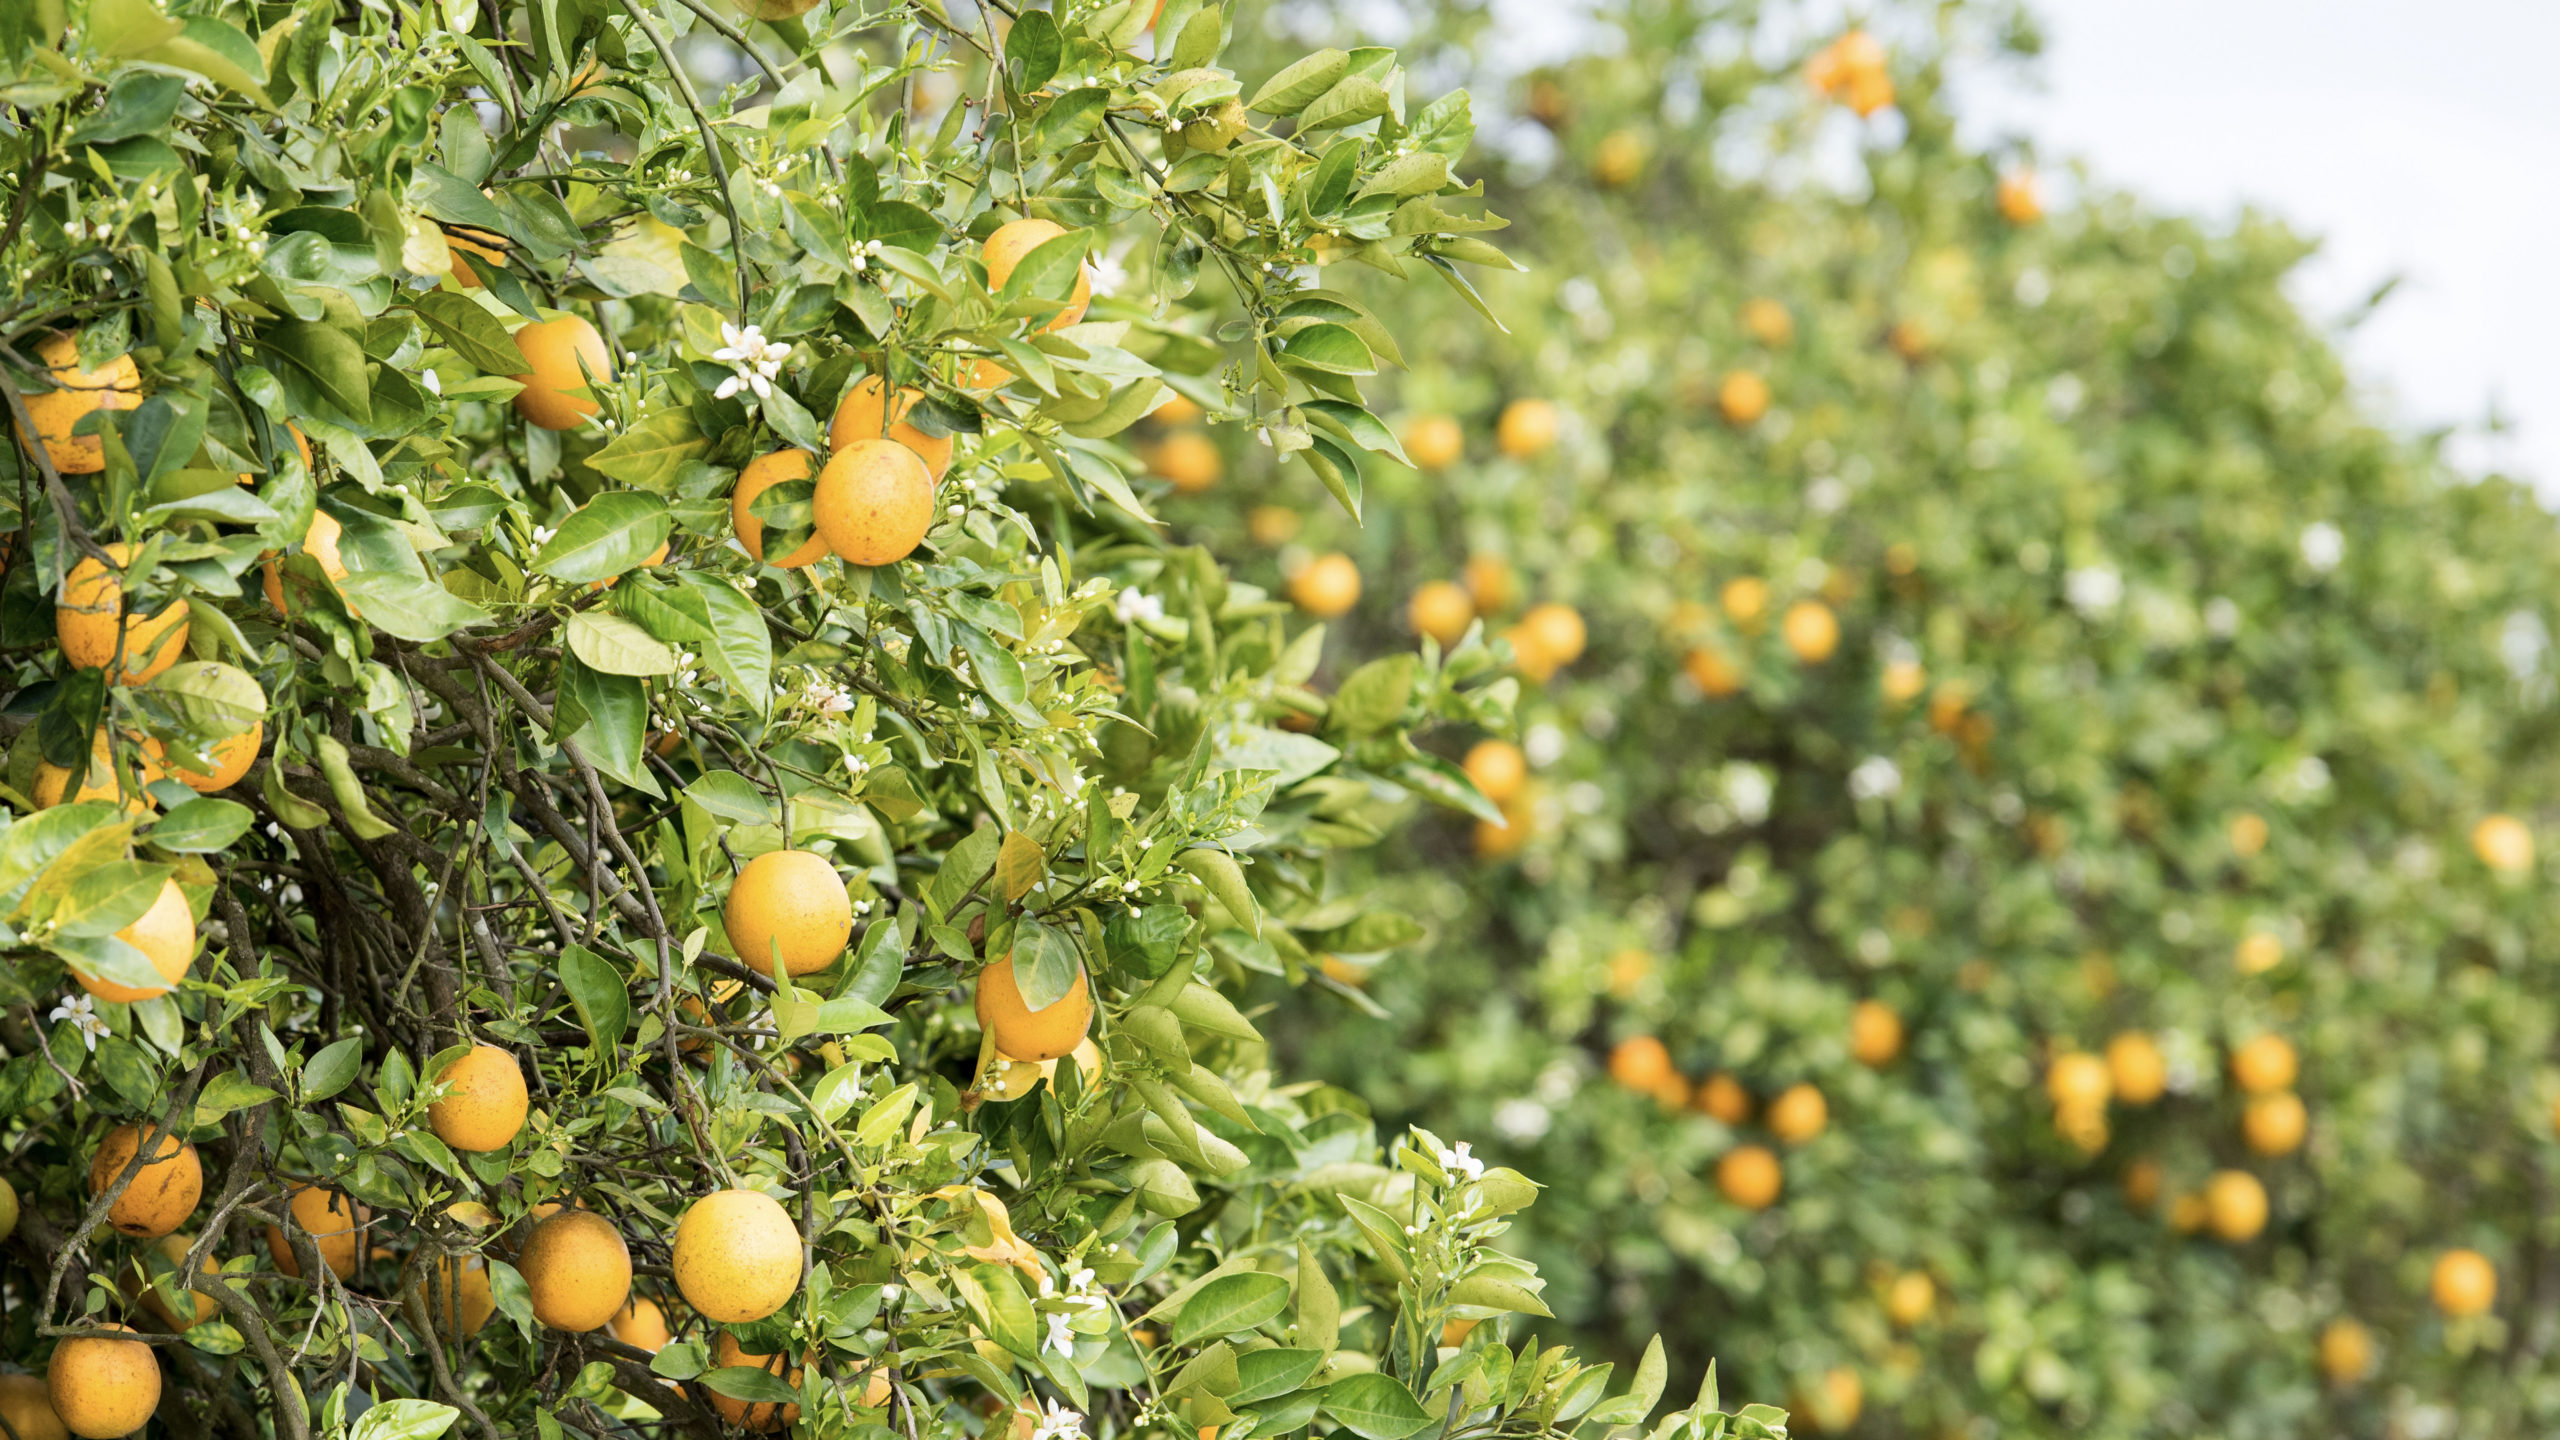 florida oranges hanging from green trees